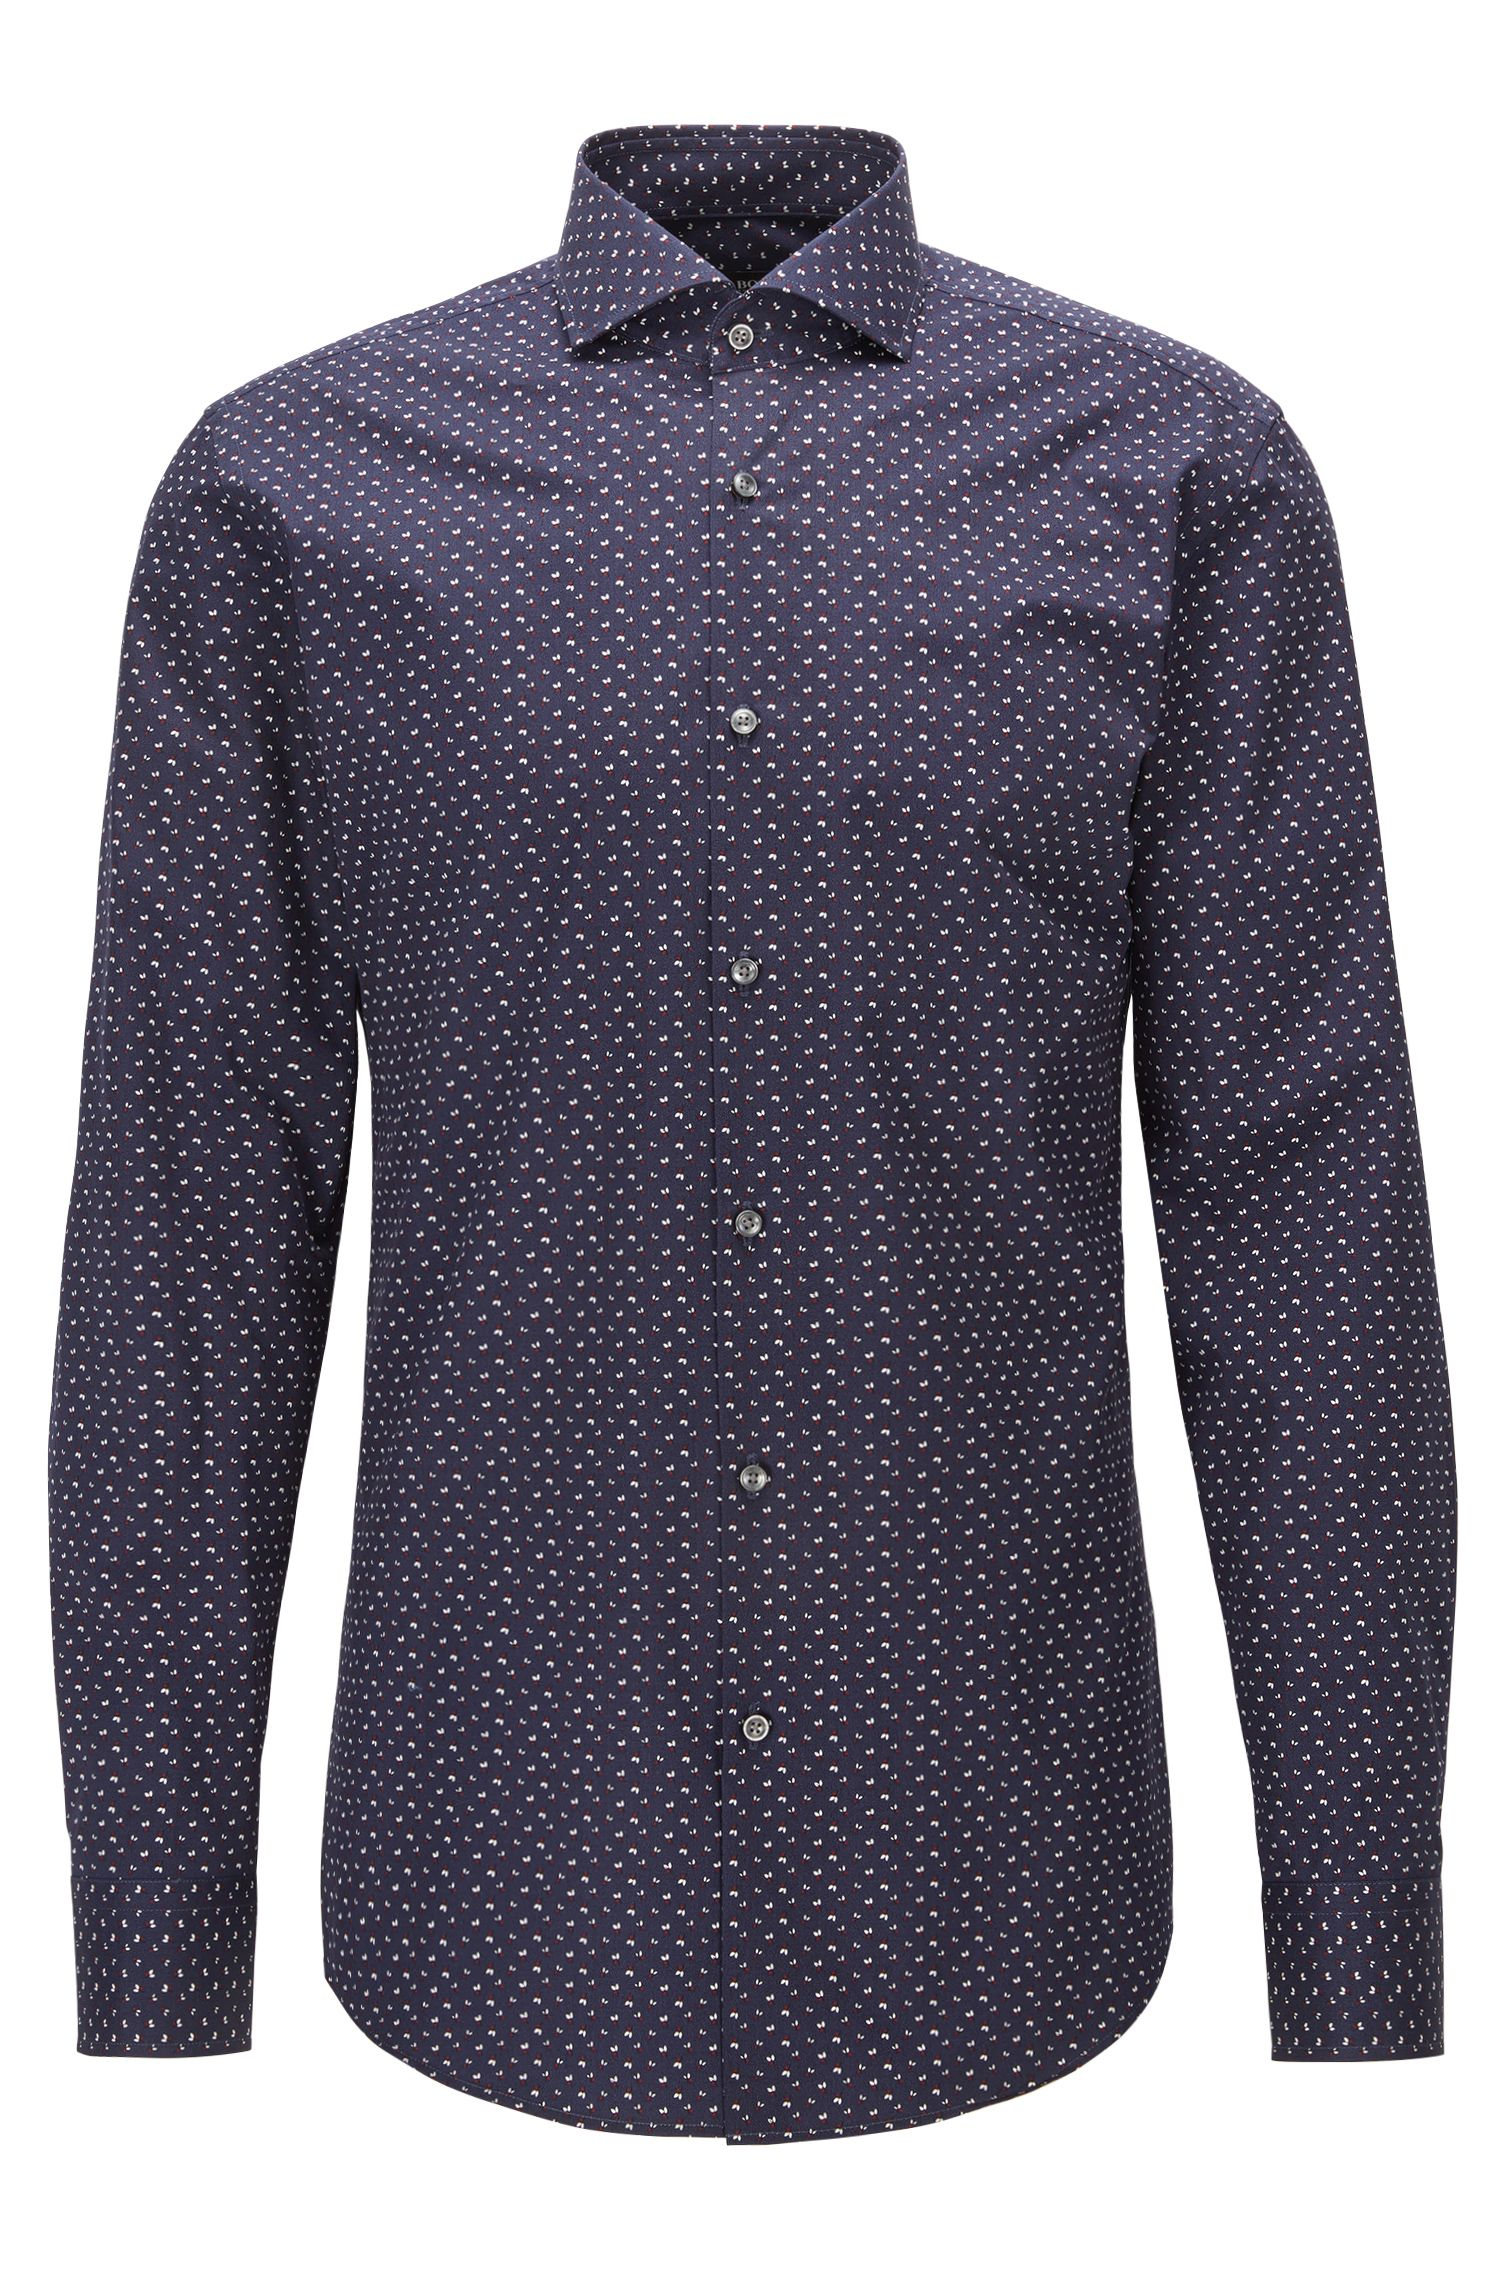 Slim-fit shirt in printed cotton poplin